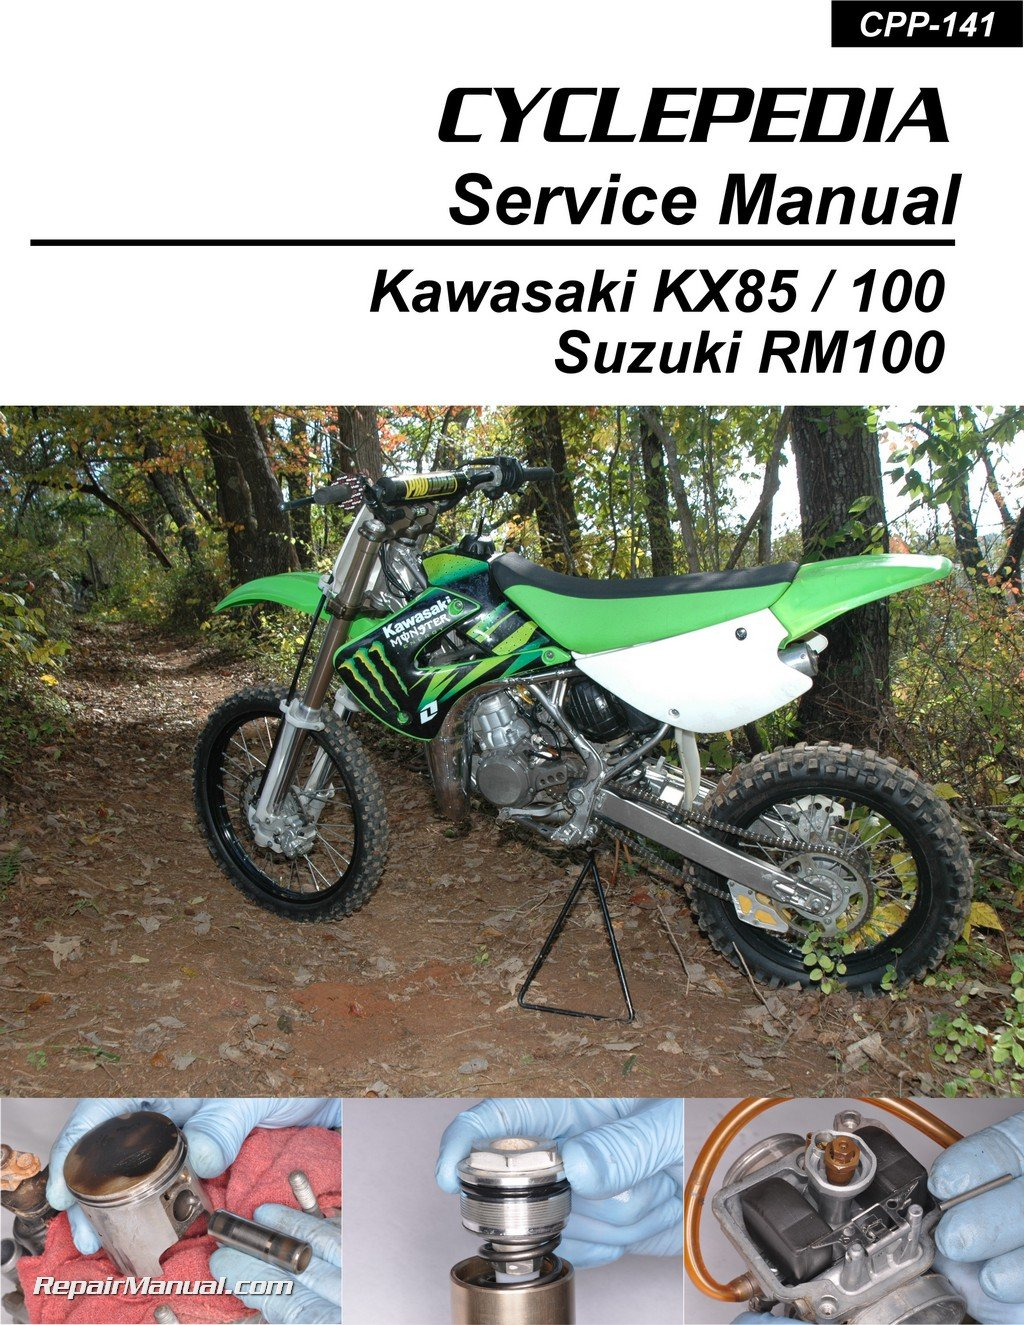 CPP-141-P Kawasaki KX85 KX100 Suzuki RM100 Cyclepedia Printed Motorcycle Service  Manual: